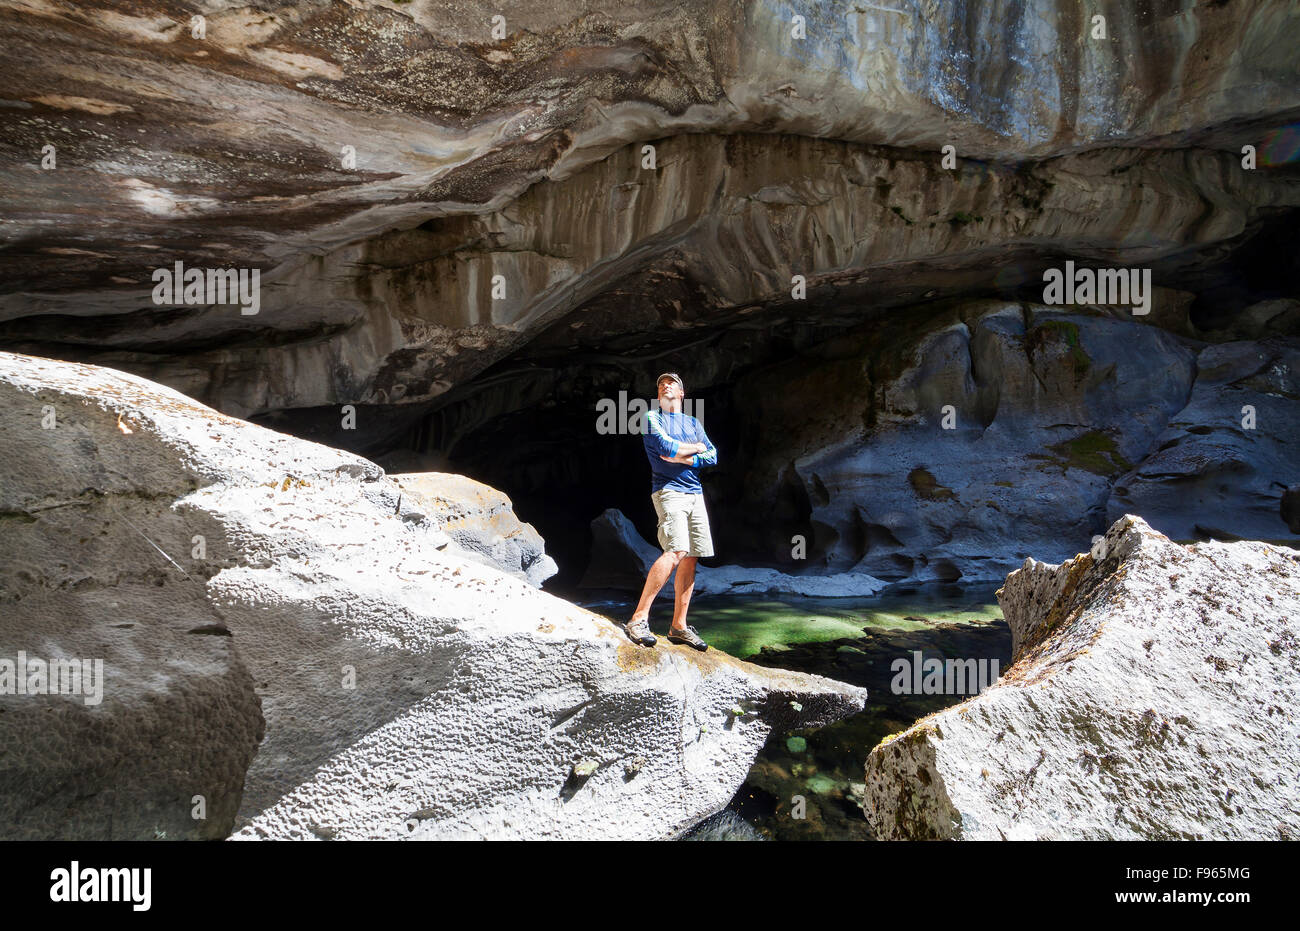 A Large Cavern Dwarfs Amature Adult Who Is Visiting The Little ...